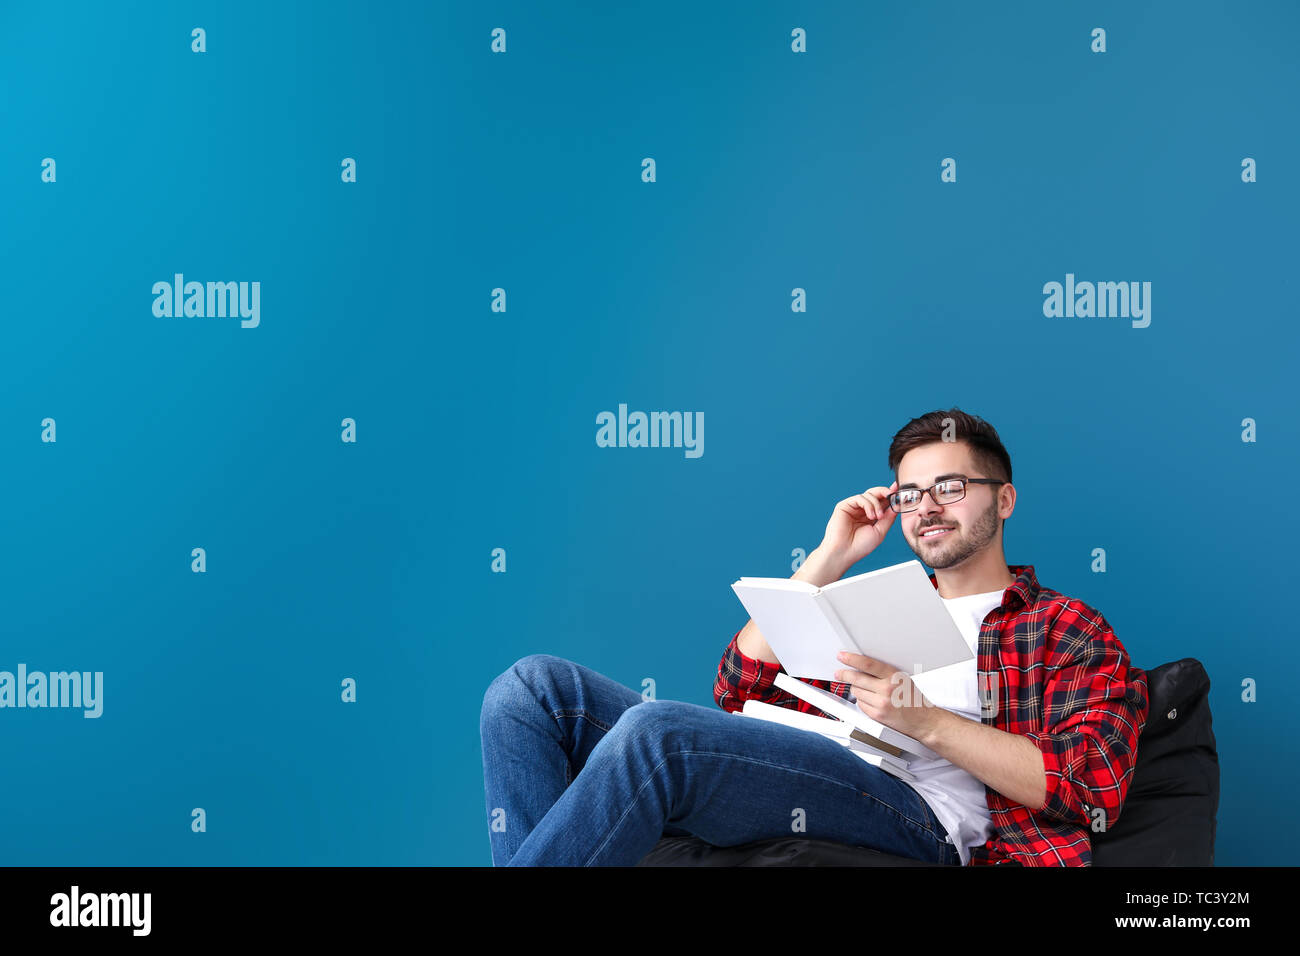 Handsome young man with books sitting near color wall - Stock Image